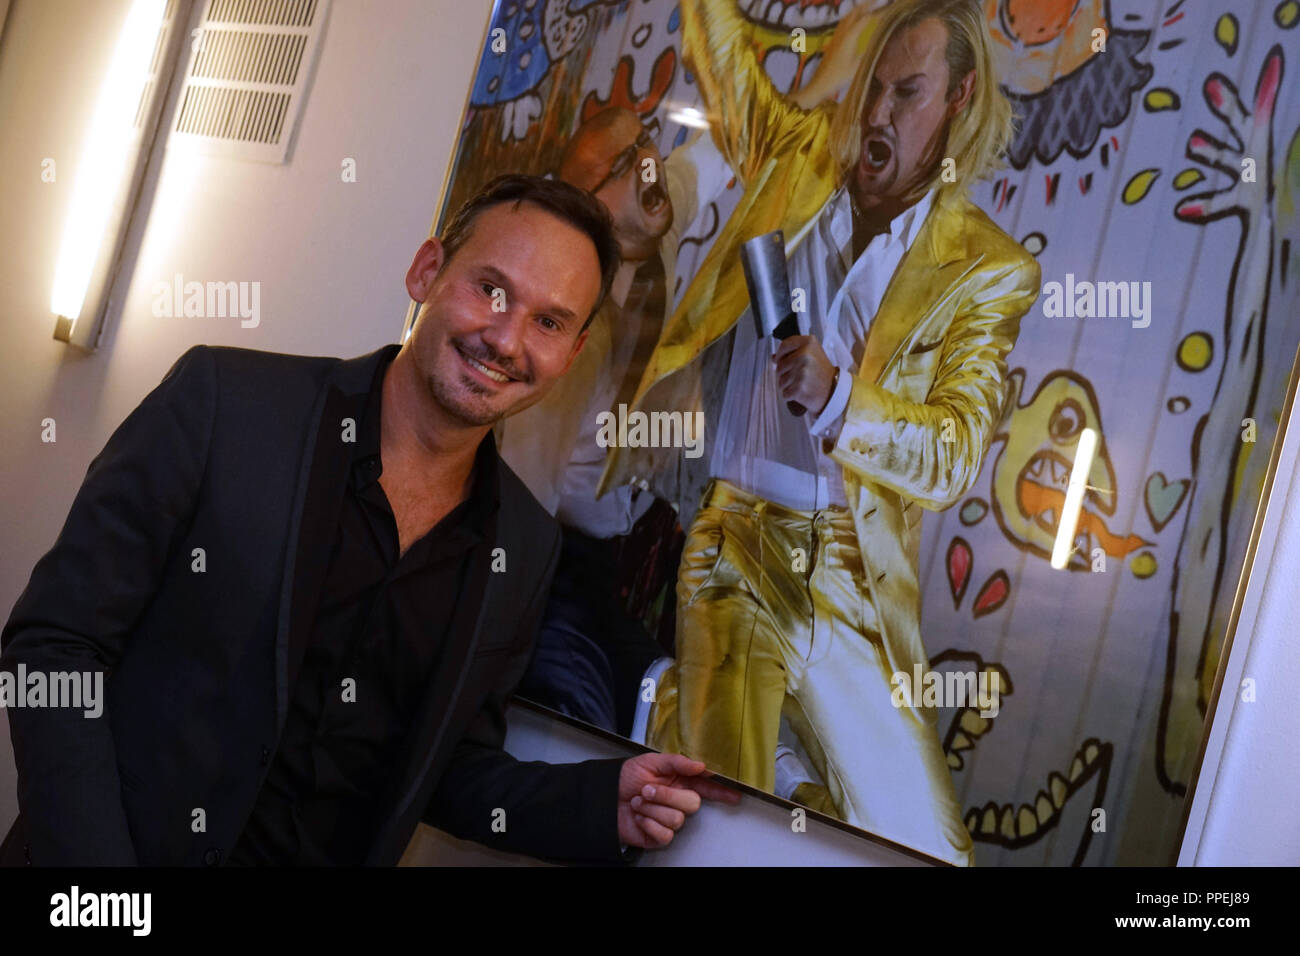 The Polish baritone Mariusz Kwiecien is celebrating at the hotel 'Bayerischer Hof' following the premiere of the Donzetti opera 'La Favorite' in the Bavarian State Opera. - Stock Image